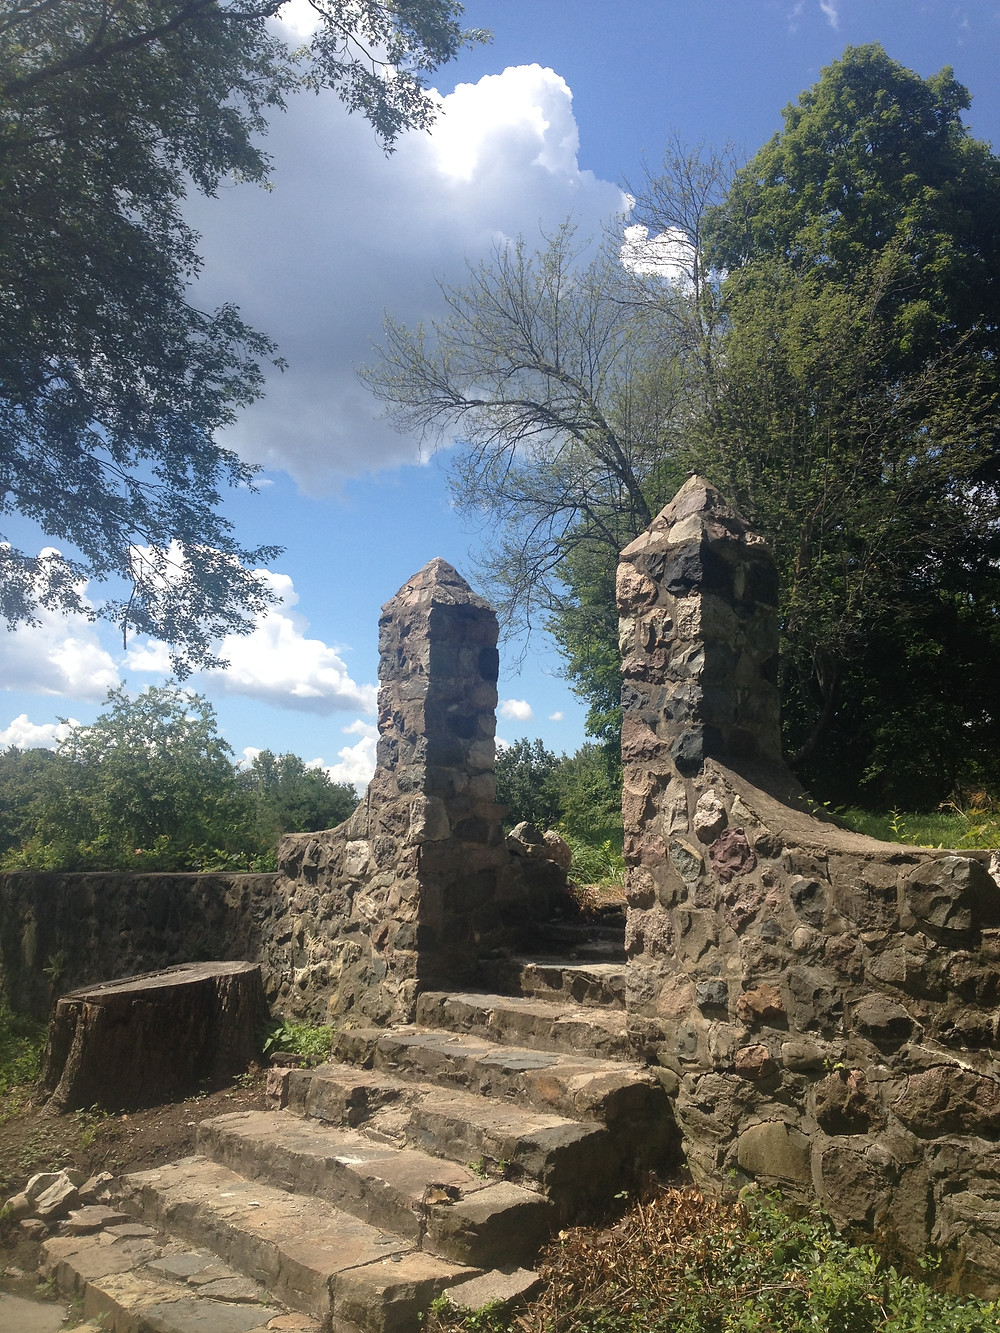 Stone ruin at Stony Creek Metropark in Michigan. Photo by Diana Dinverno